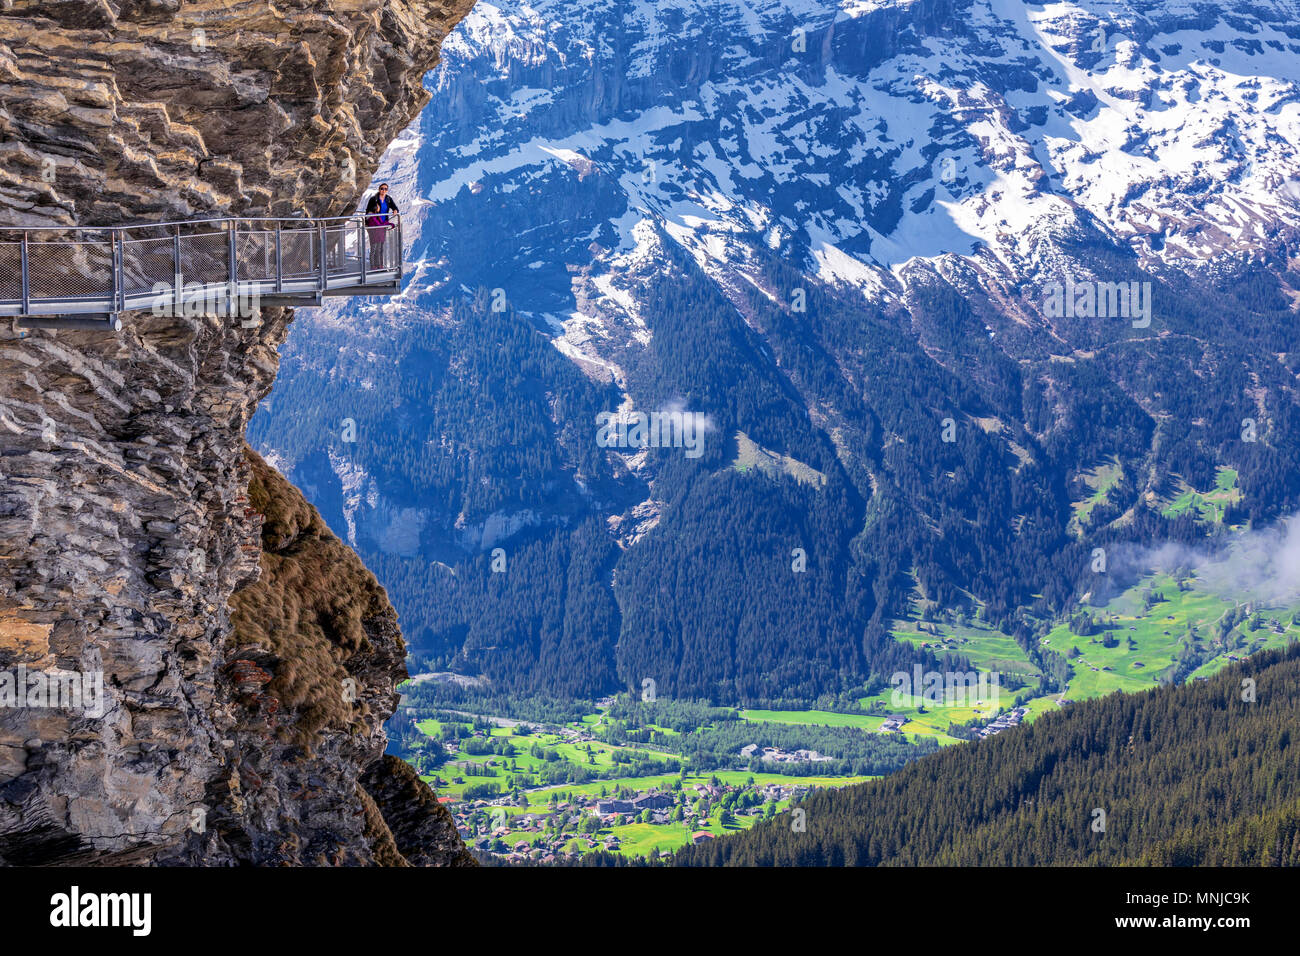 Mountain platform First Cliff Walk by Tissot, Grindelwald, Bernese Oberland, Switzerland - Stock Image